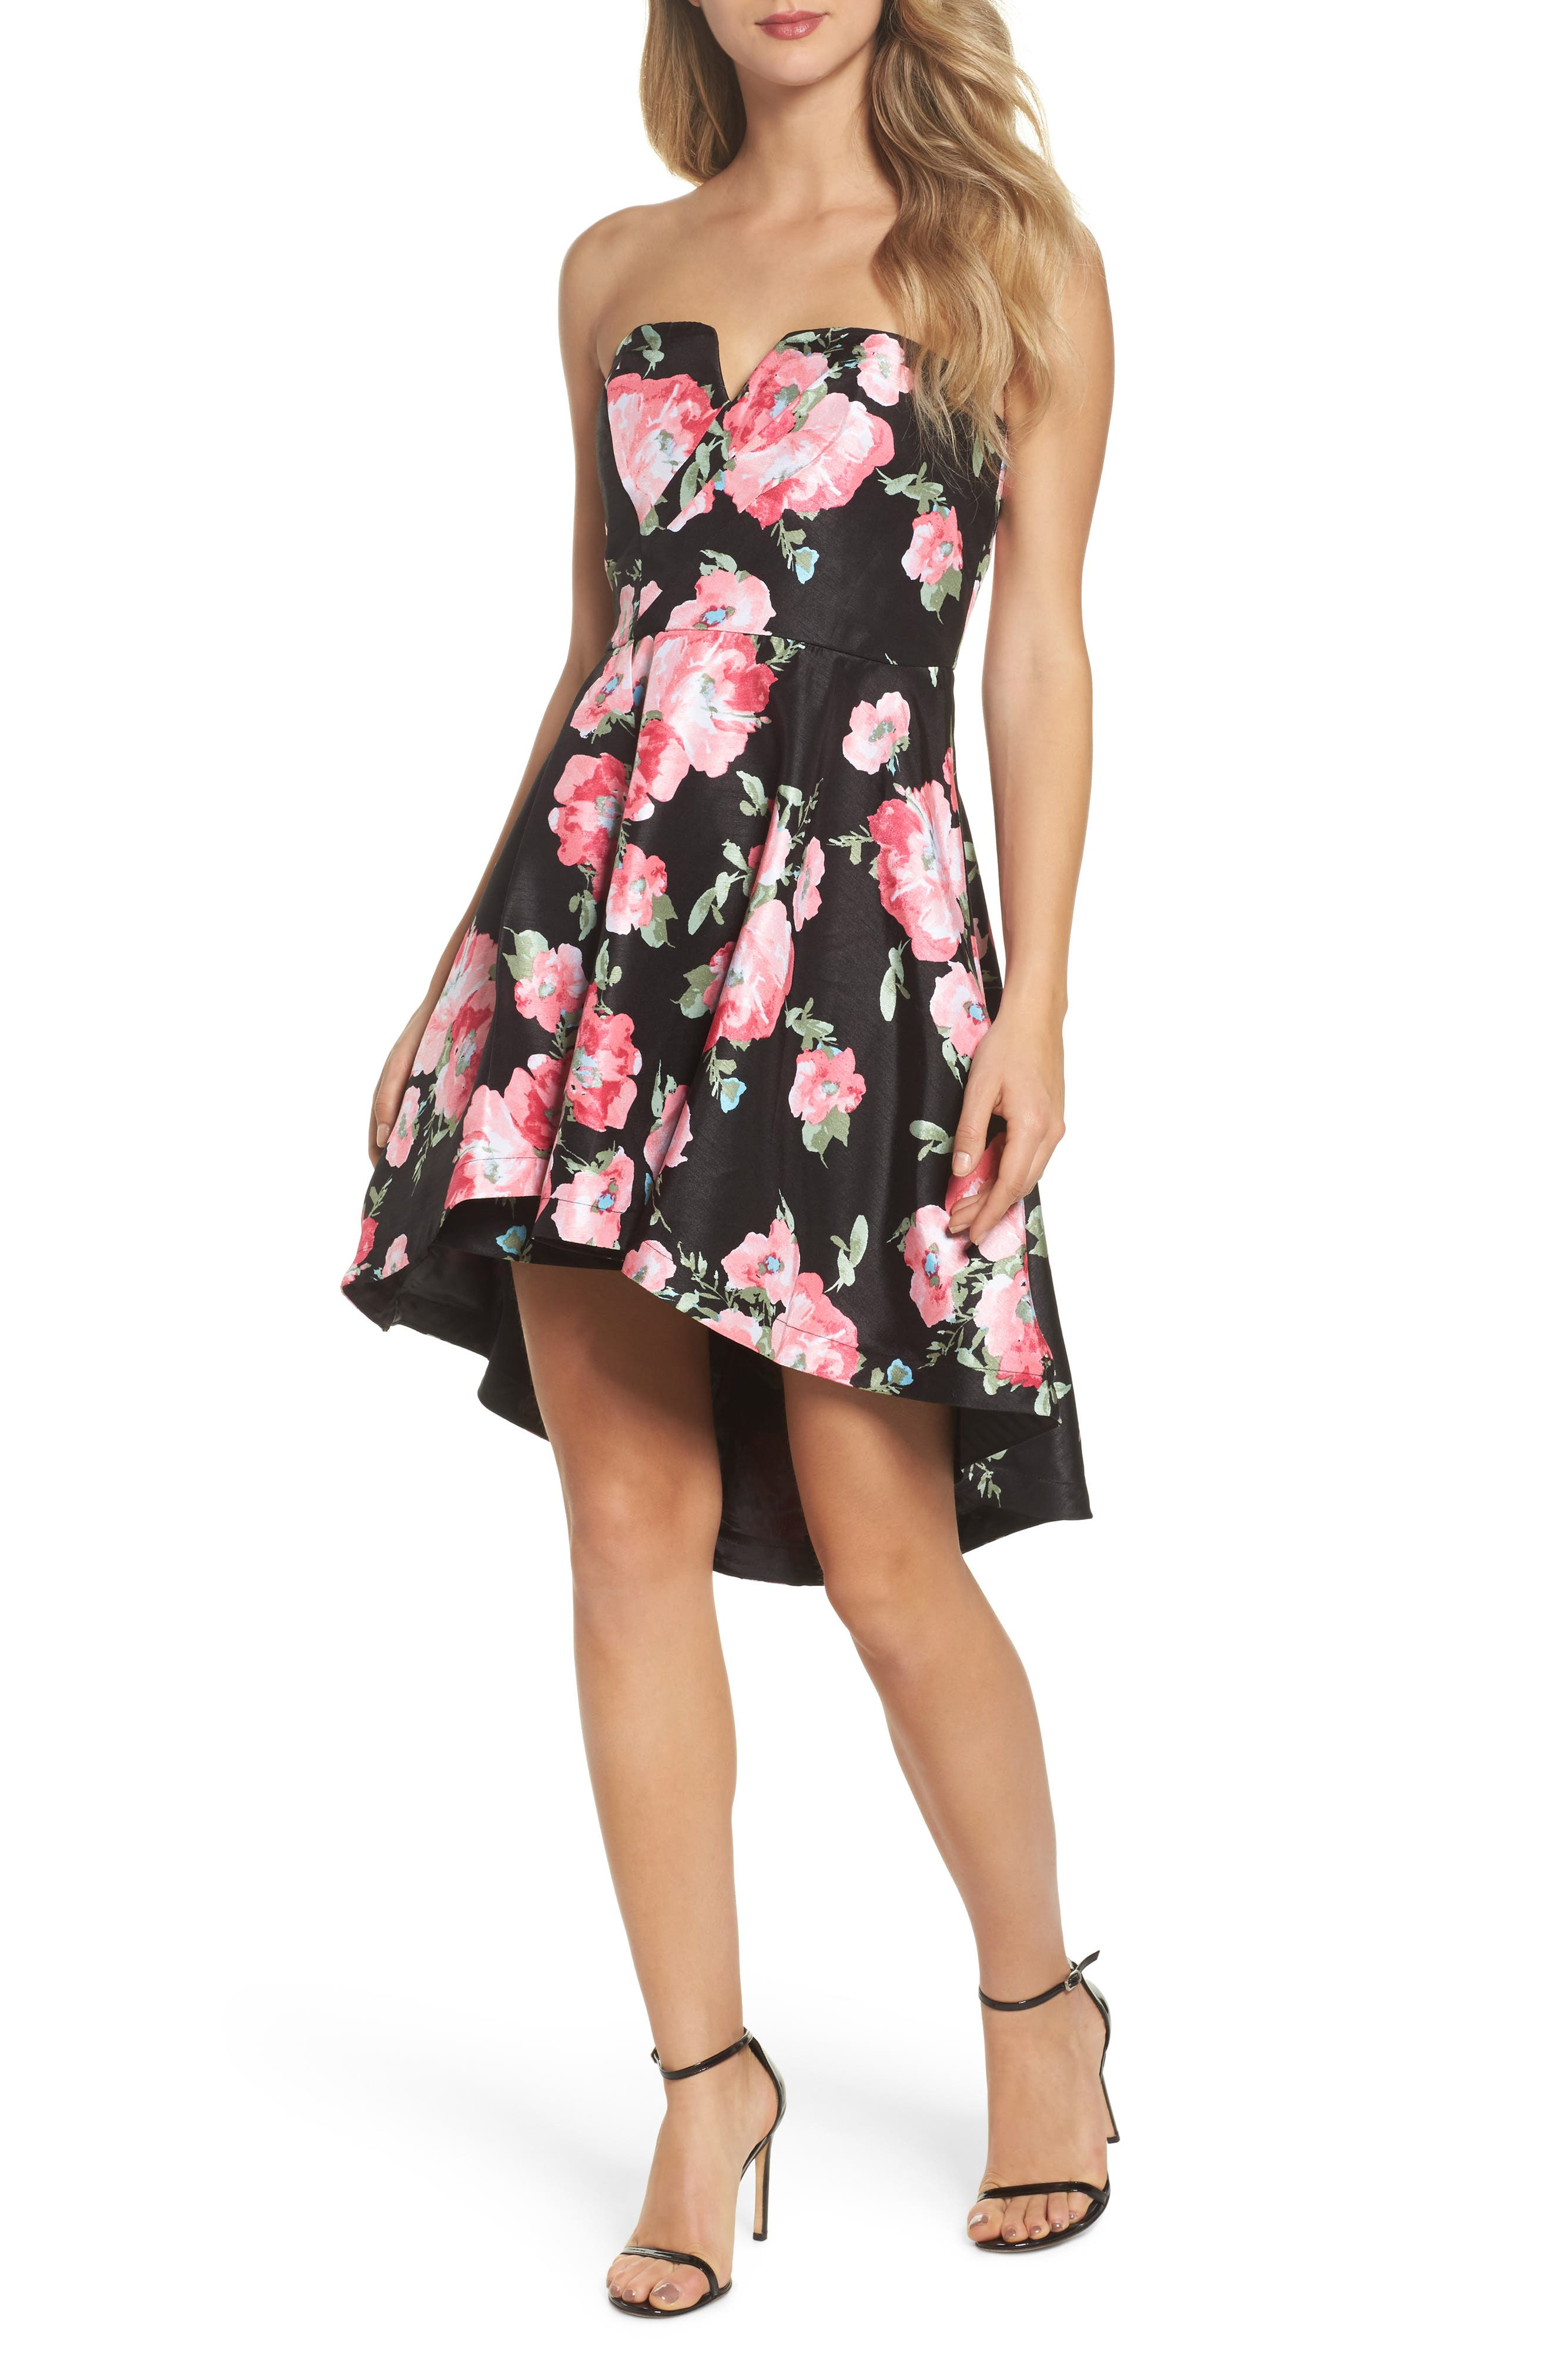 Main Image - Sequin Hearts Floral High/Low Strapless Dress